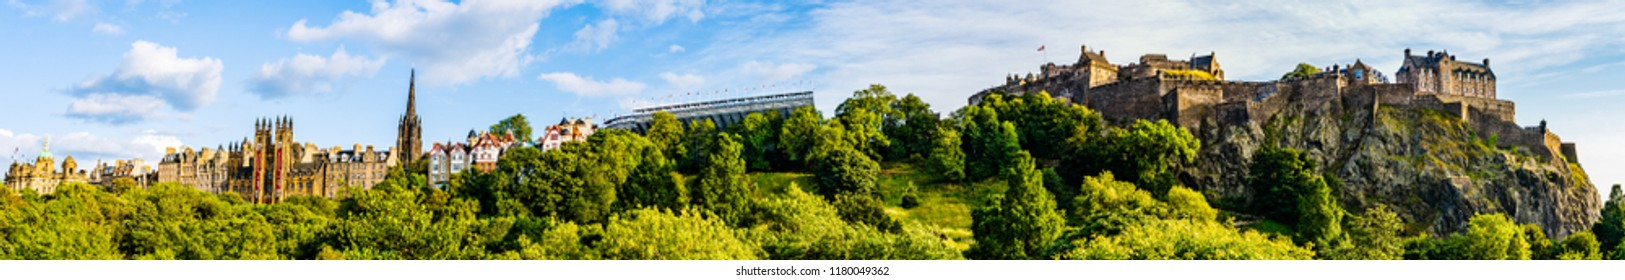 Edinburgh, Scotland, UK - August 25, 2018: Panorama of Edinburgh Castle dominating the skyline of the city of Edinburgh from its position on top of the Castle Rock